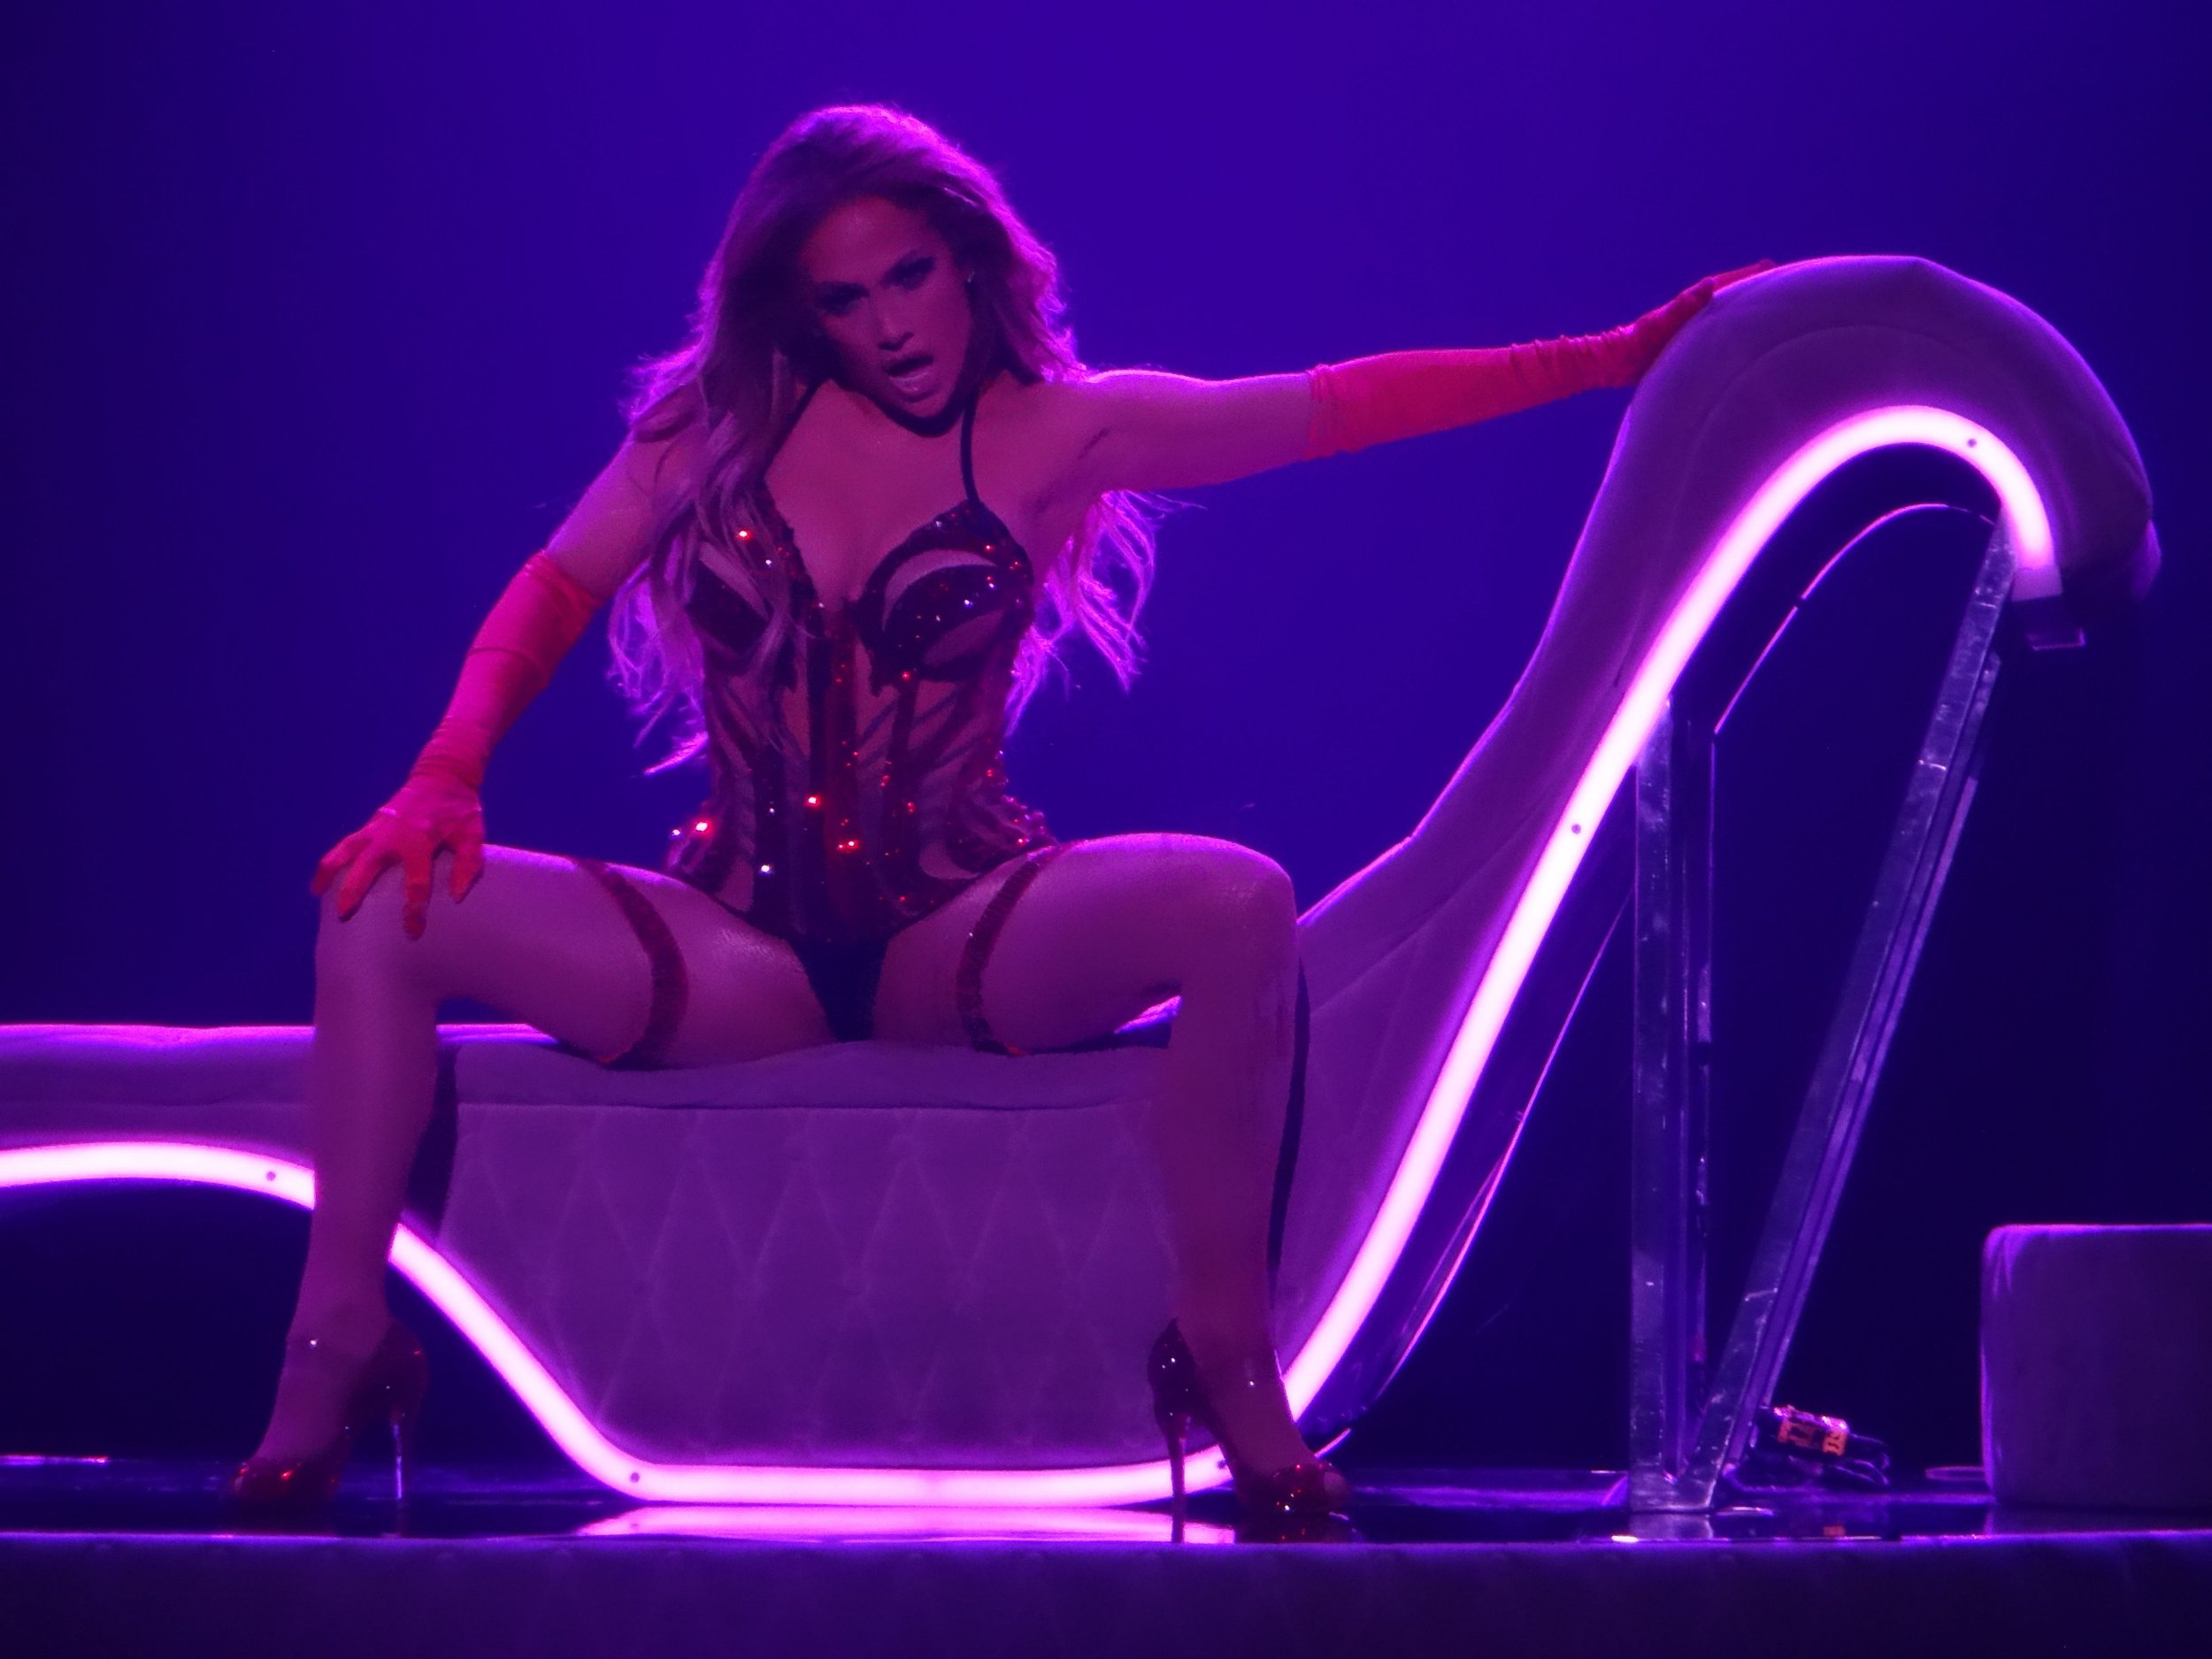 PREMIUM EXCLUSIVE Please contact X17 before any use of these exclusive photos - x17@x17agency.com Jennifer Lopez striking in Las Vegas , sexier than ever for her new show in Sin City April 20, 2018 /X17online.com